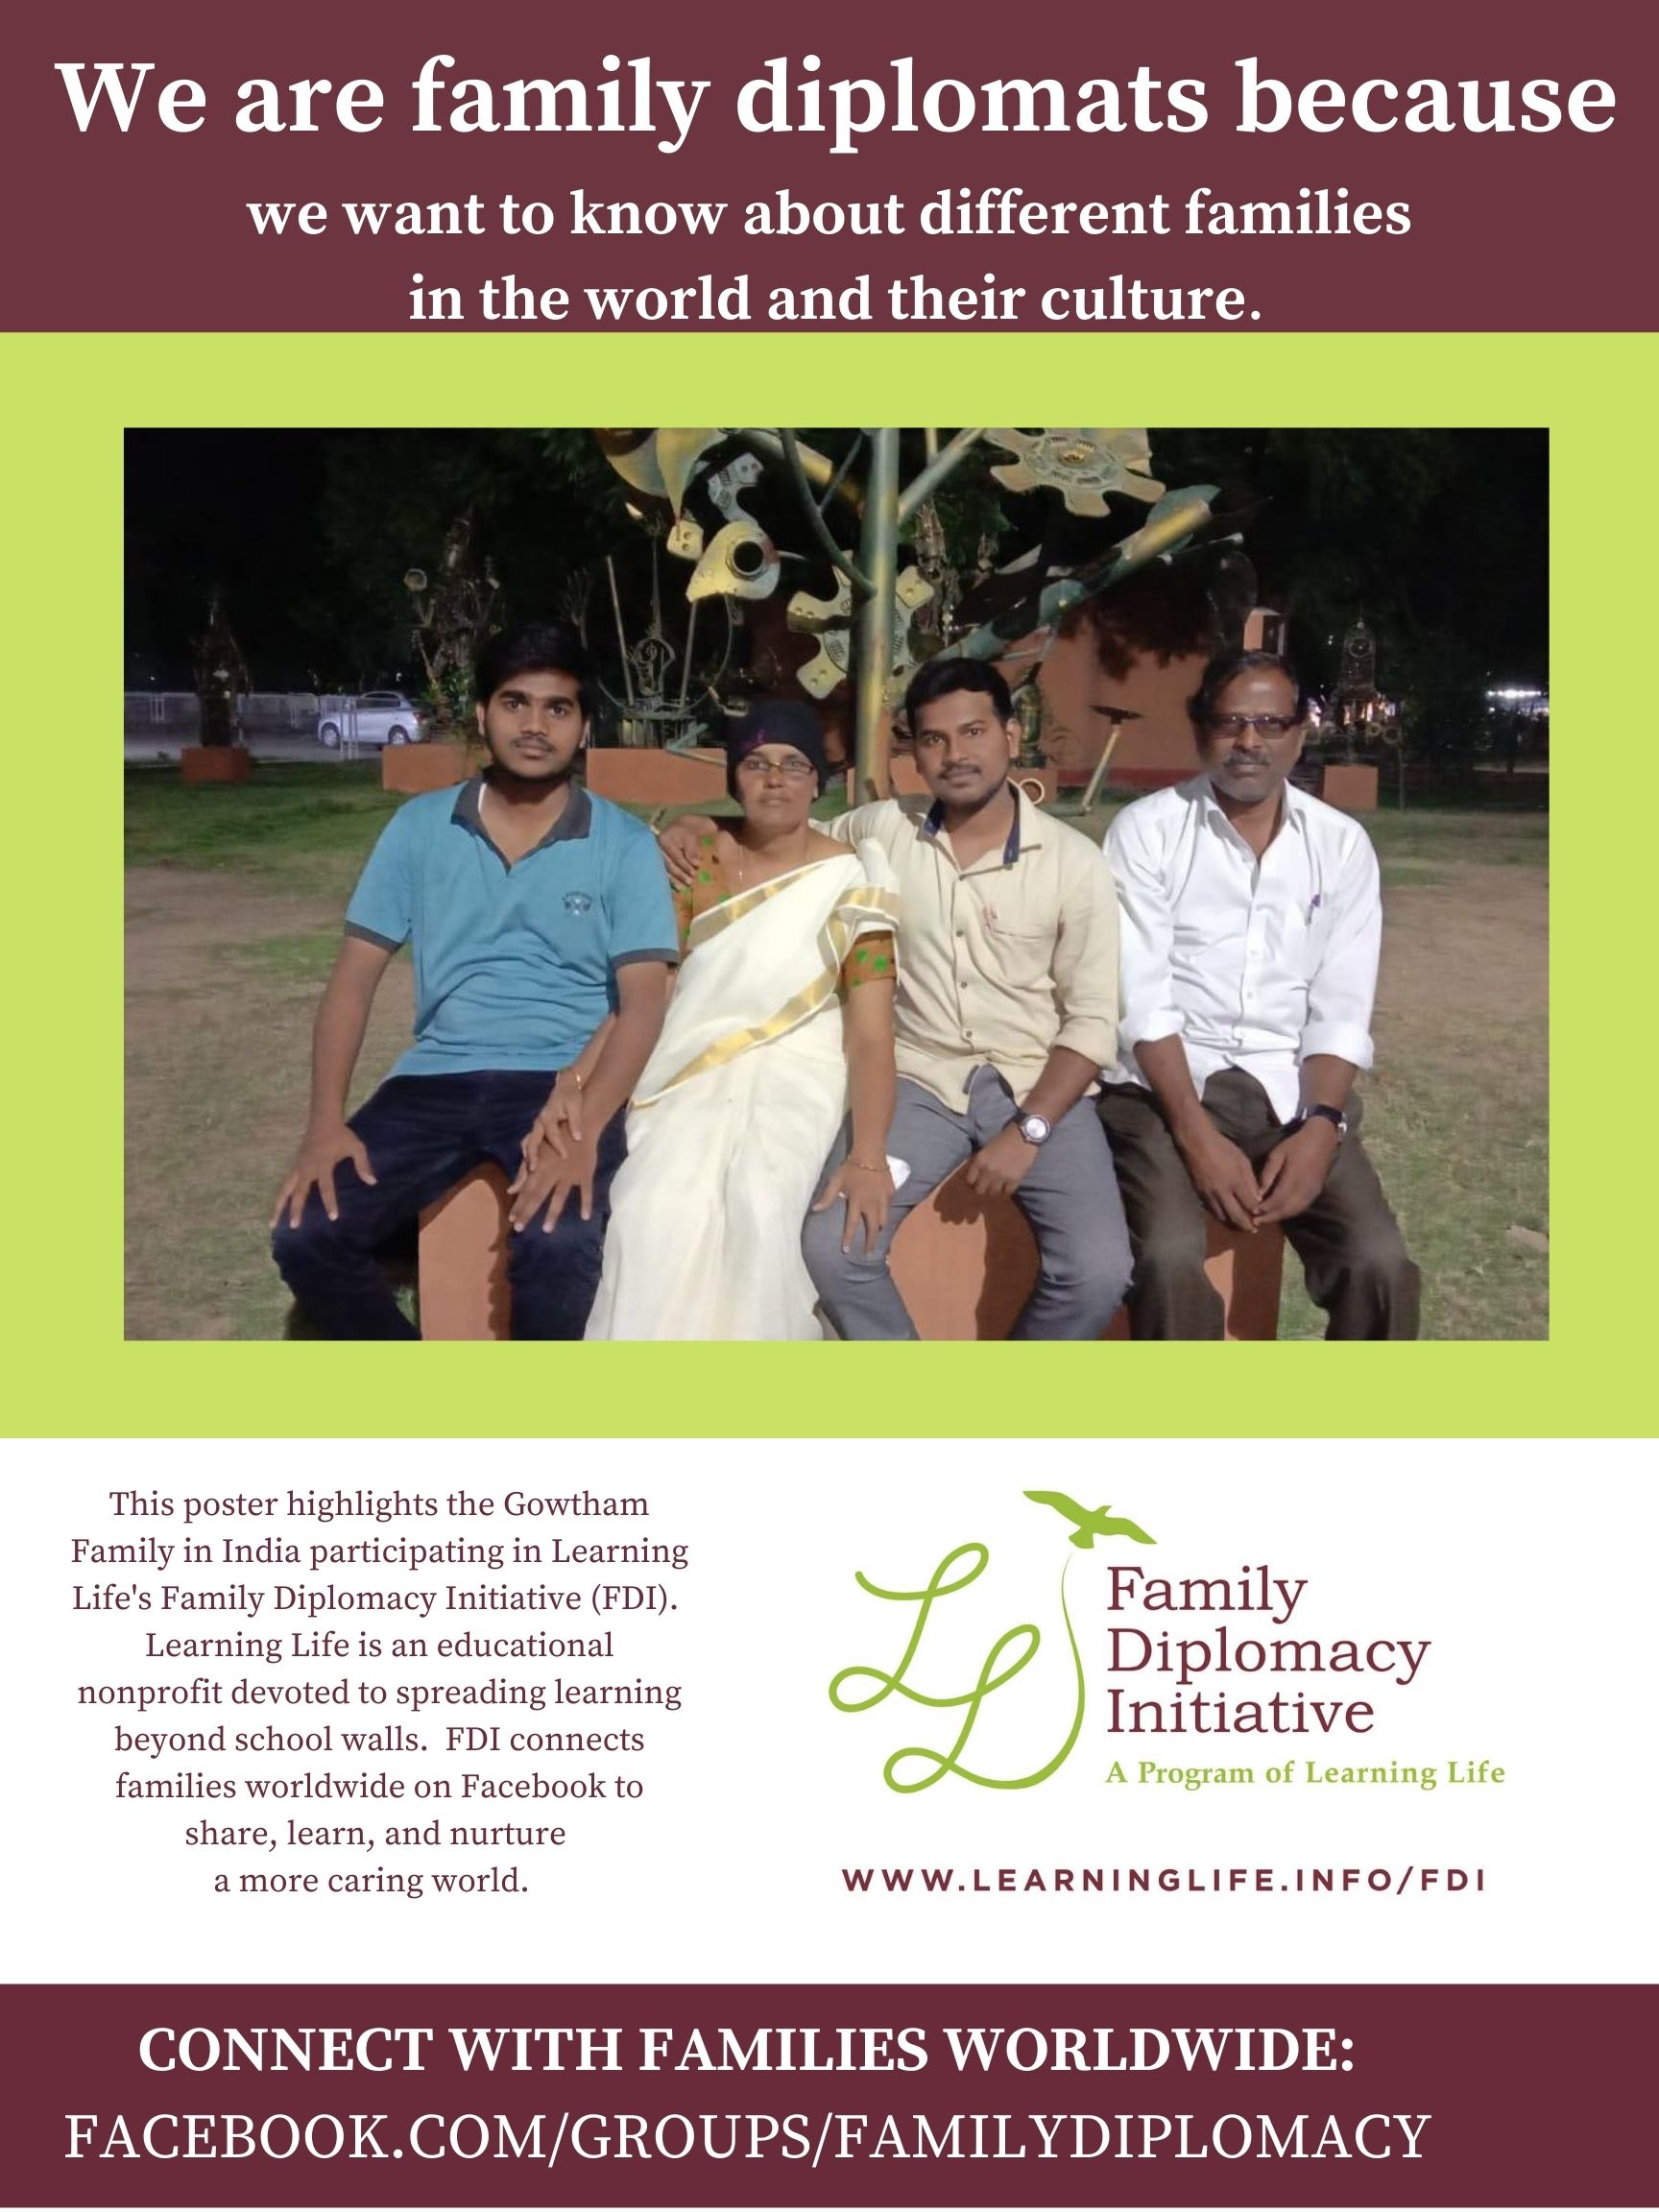 We Are Family Diplomats Poster